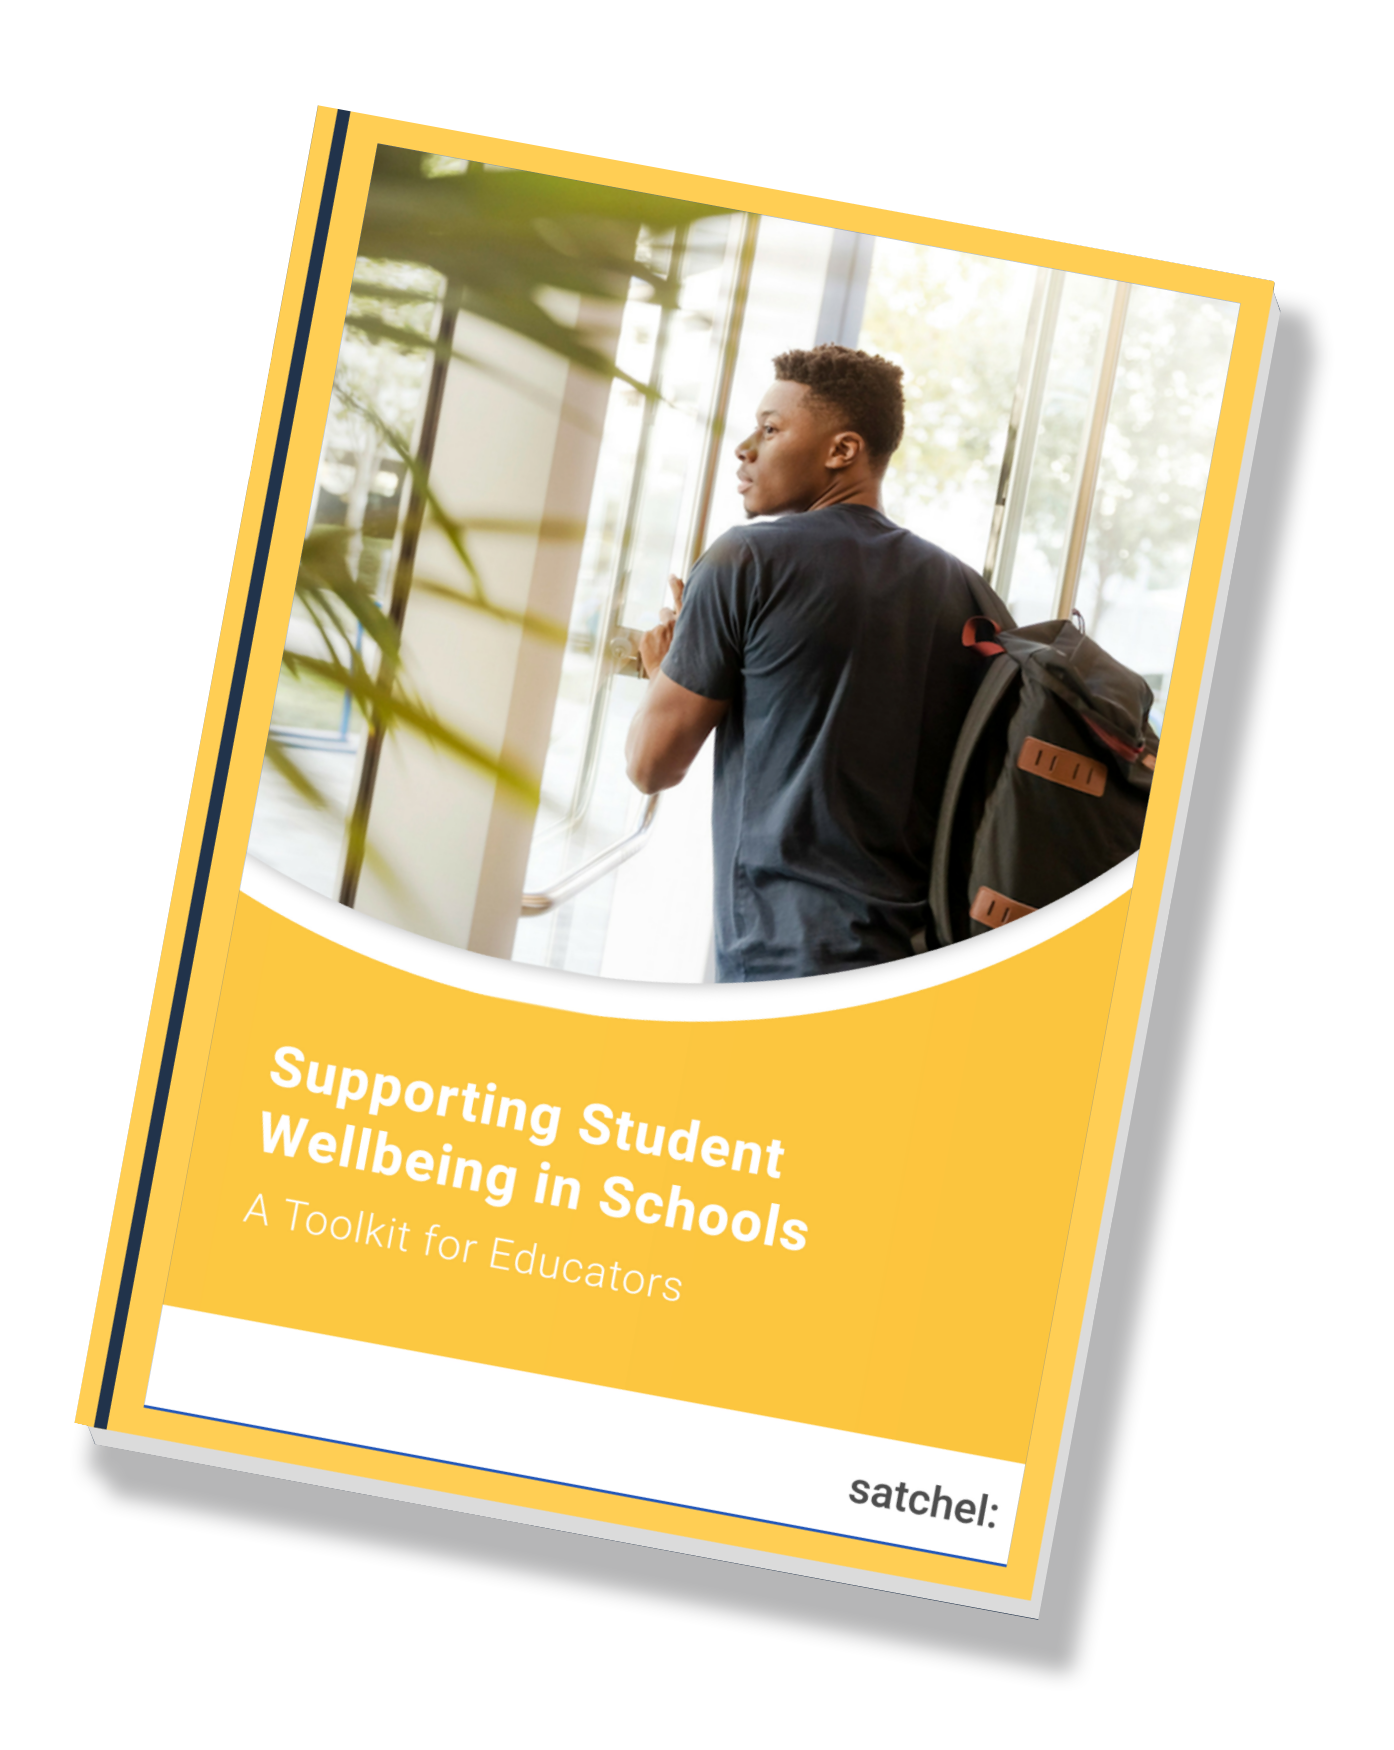 Student Wellbeing Toolkit Mockup